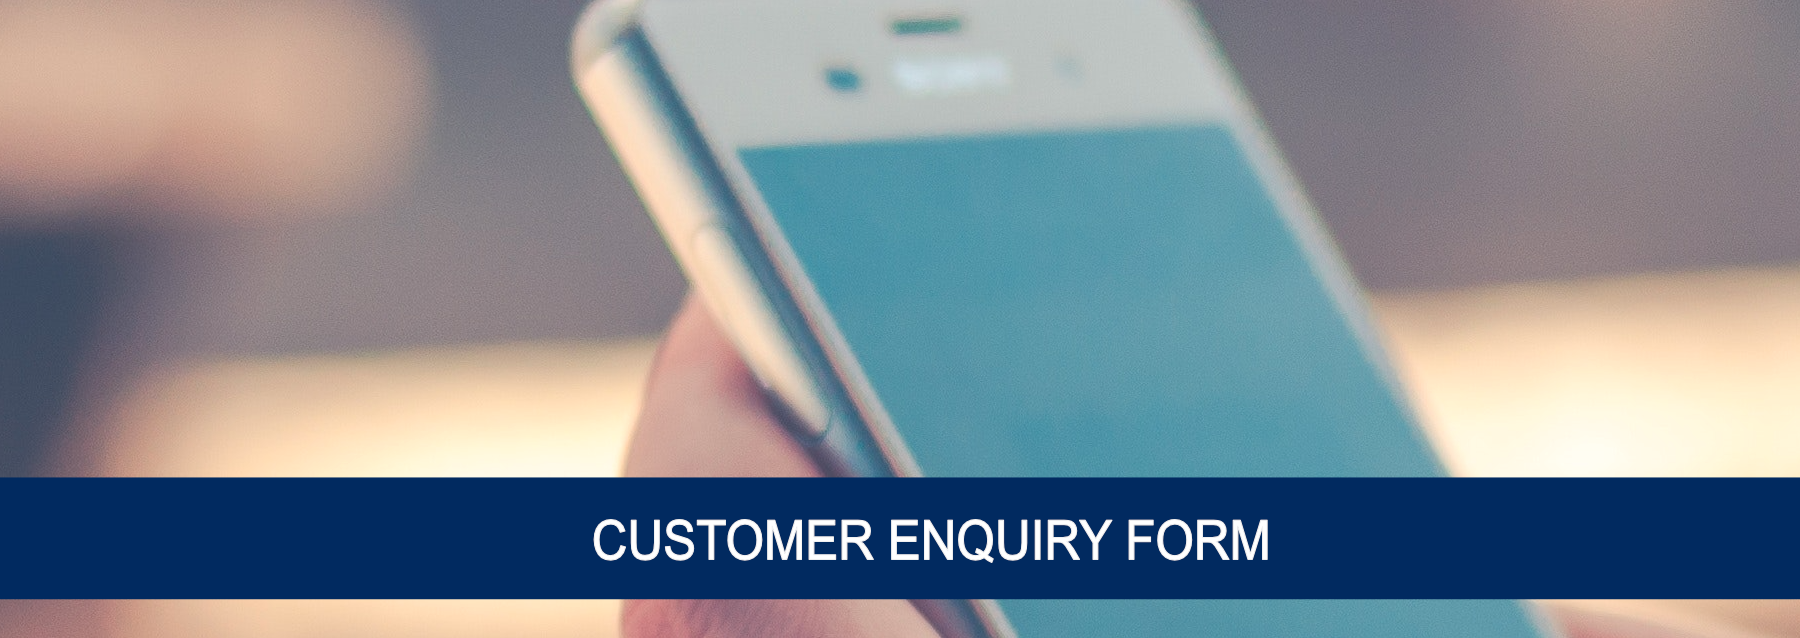 Enquiry Page Banner